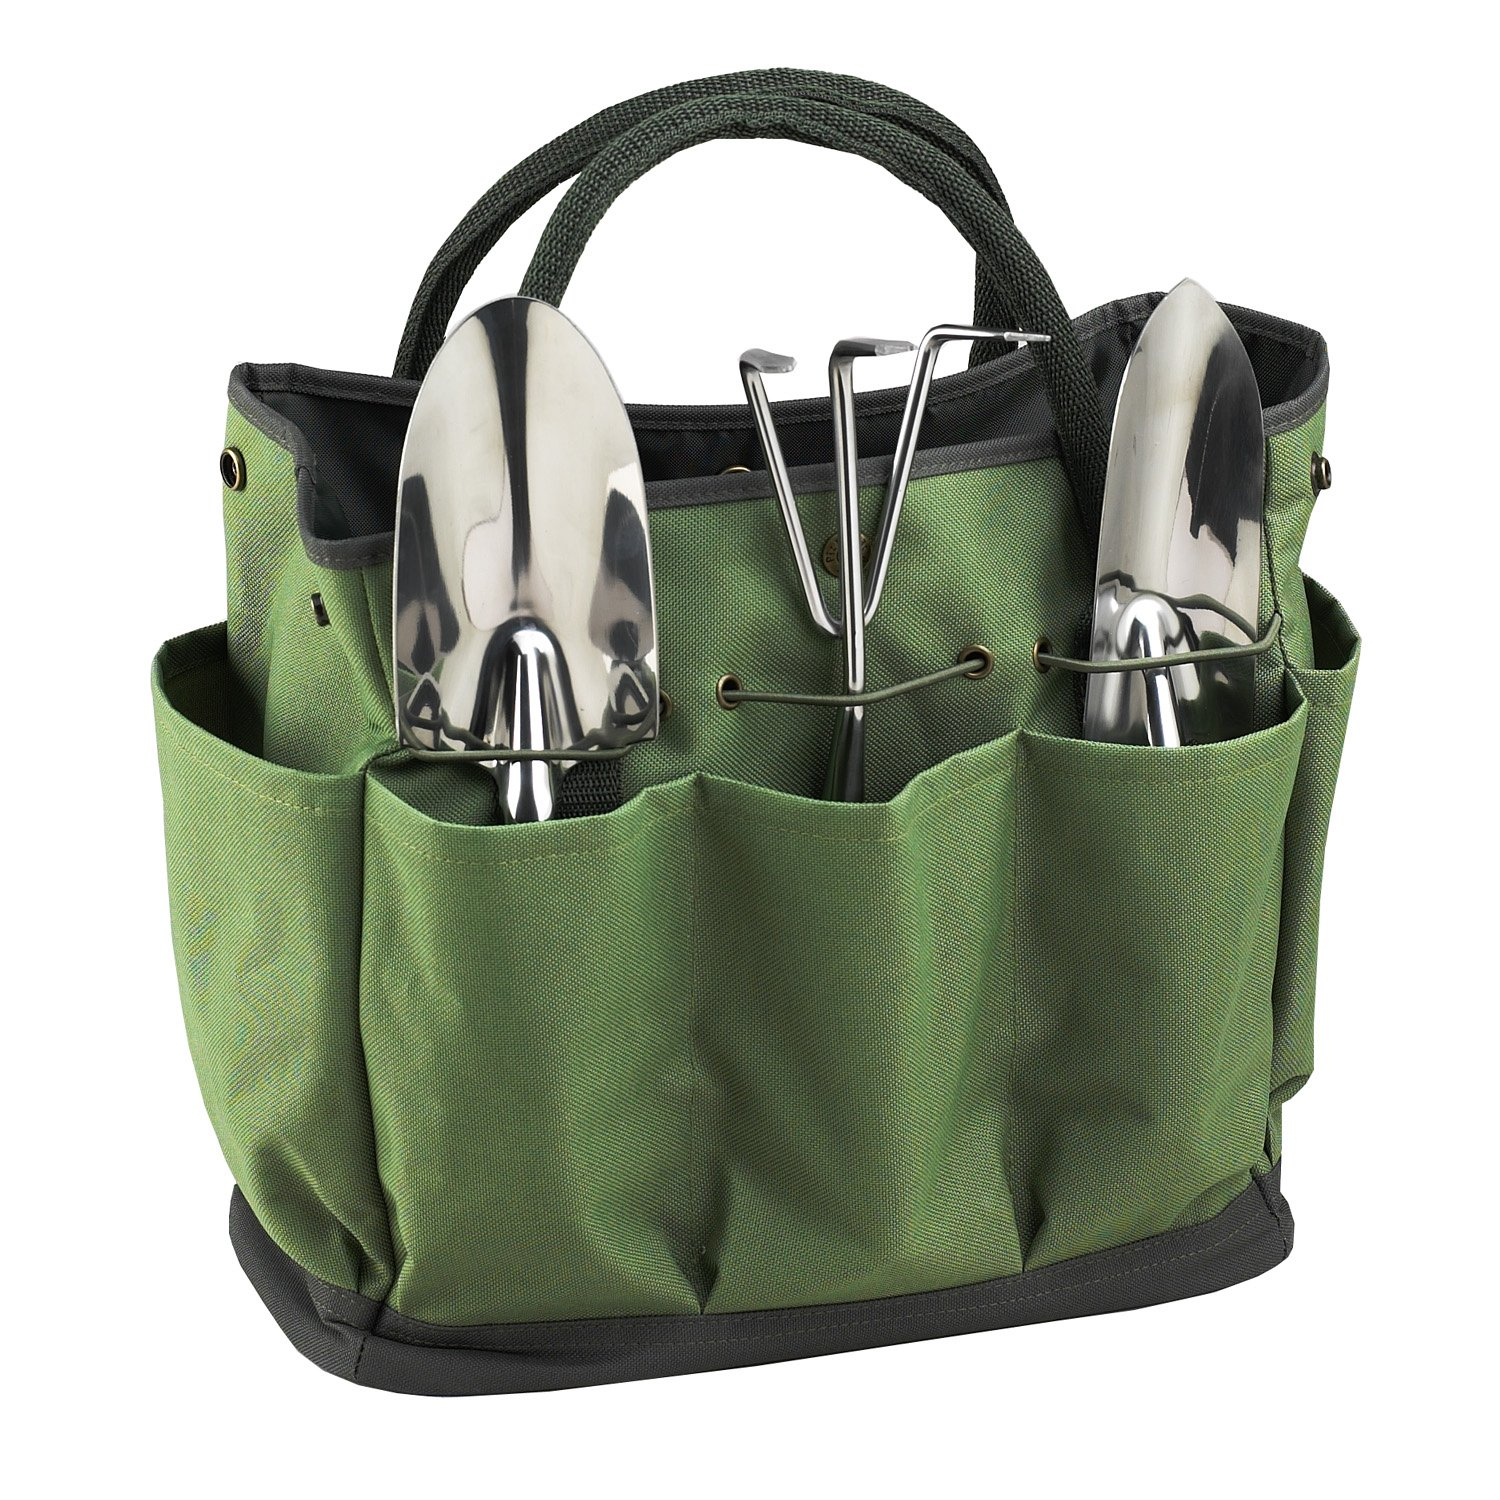 Picnic at Ascot Eco Gardening Tote with Tool Set, Forest Green 341-FO